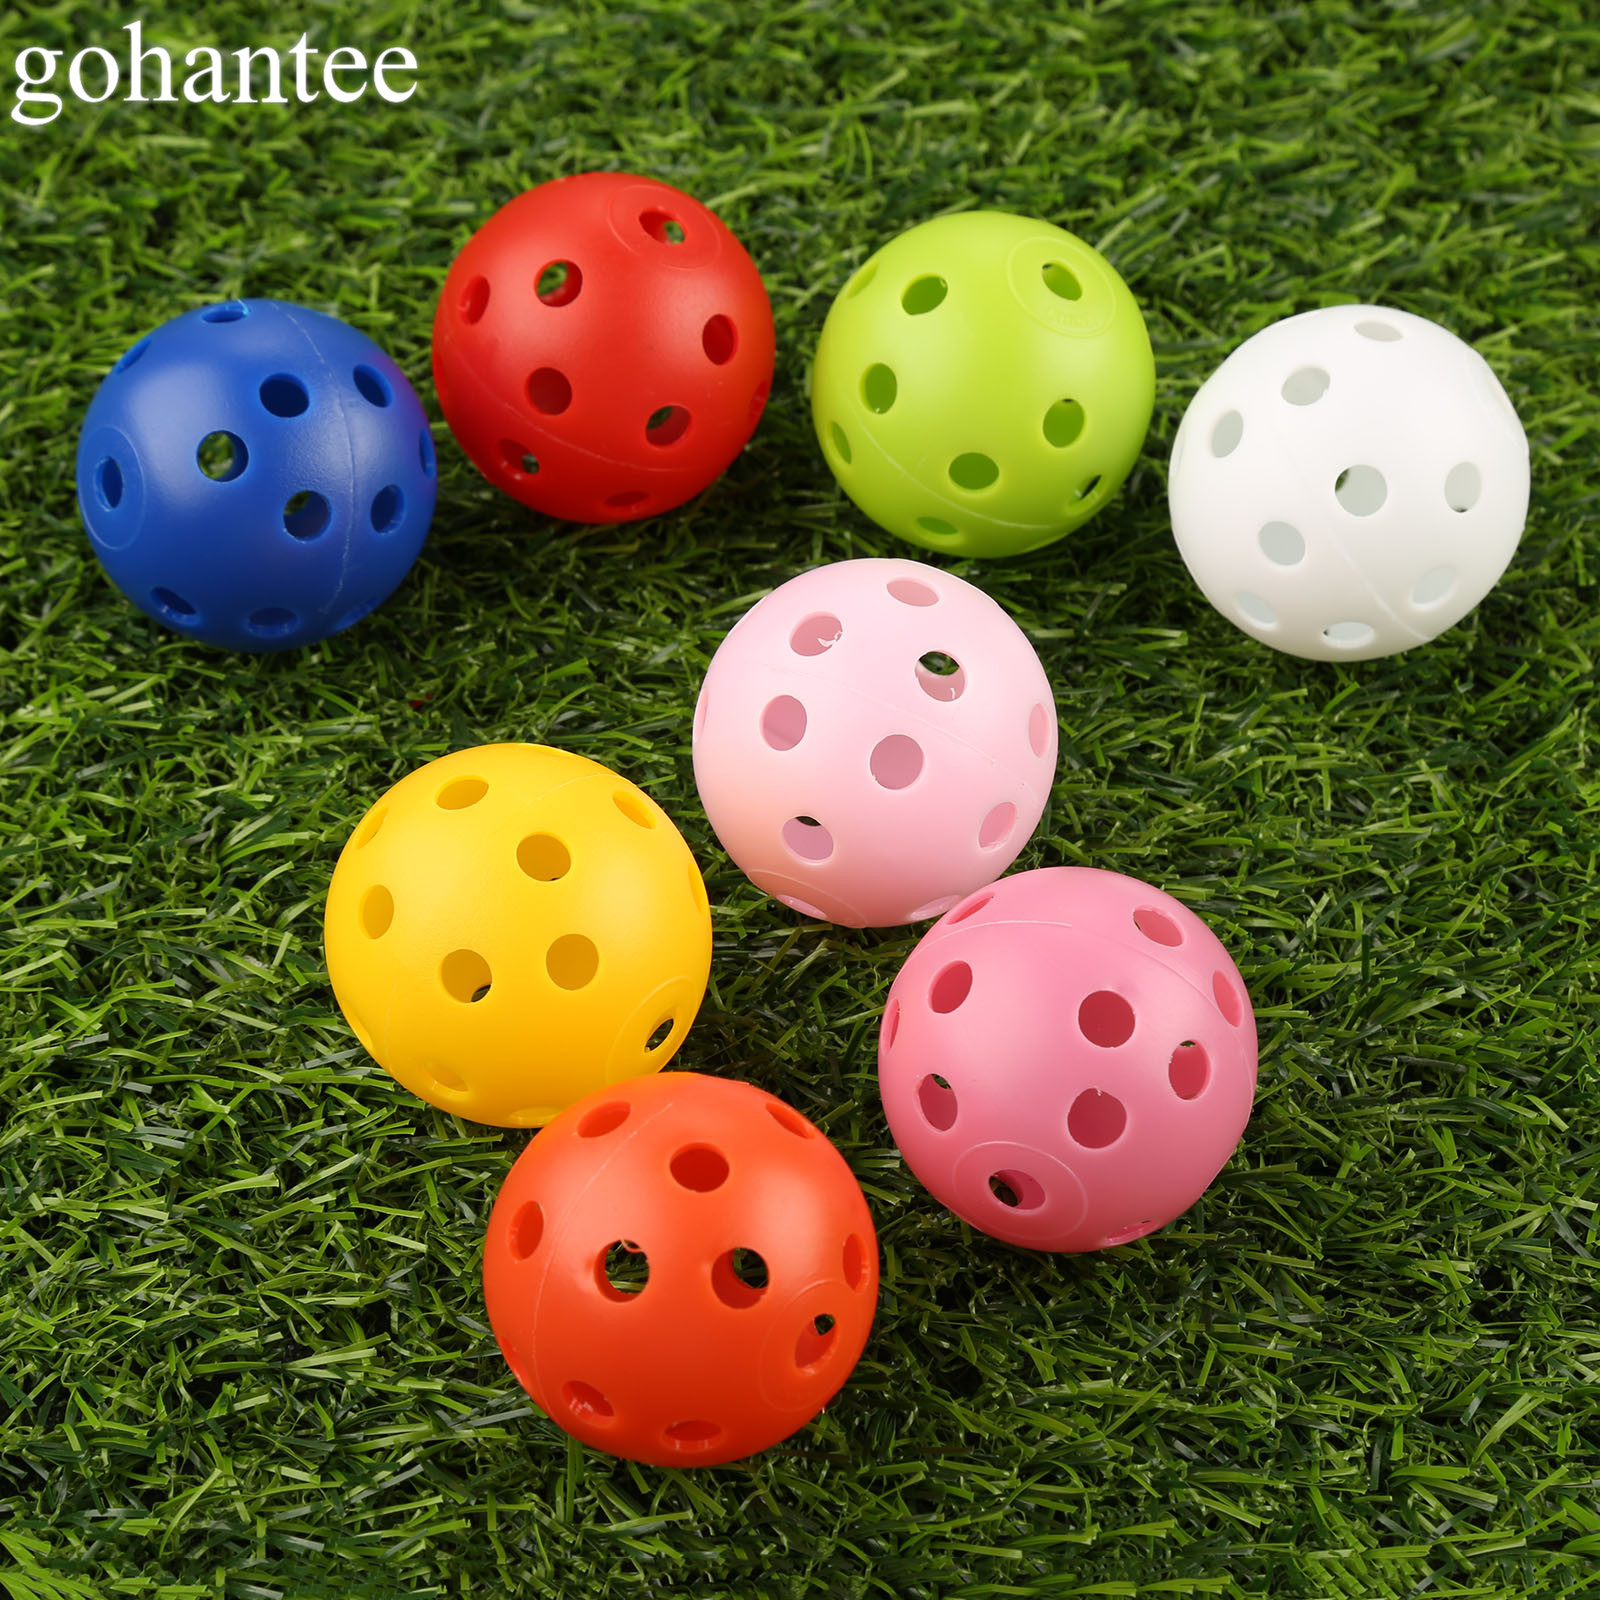 Gohantee 10Pcs 41mm Golf Training Balls Plastic Airflow Hollow With Hole Golf Balls Outdoor Golf Practice Balls Golf Accessories